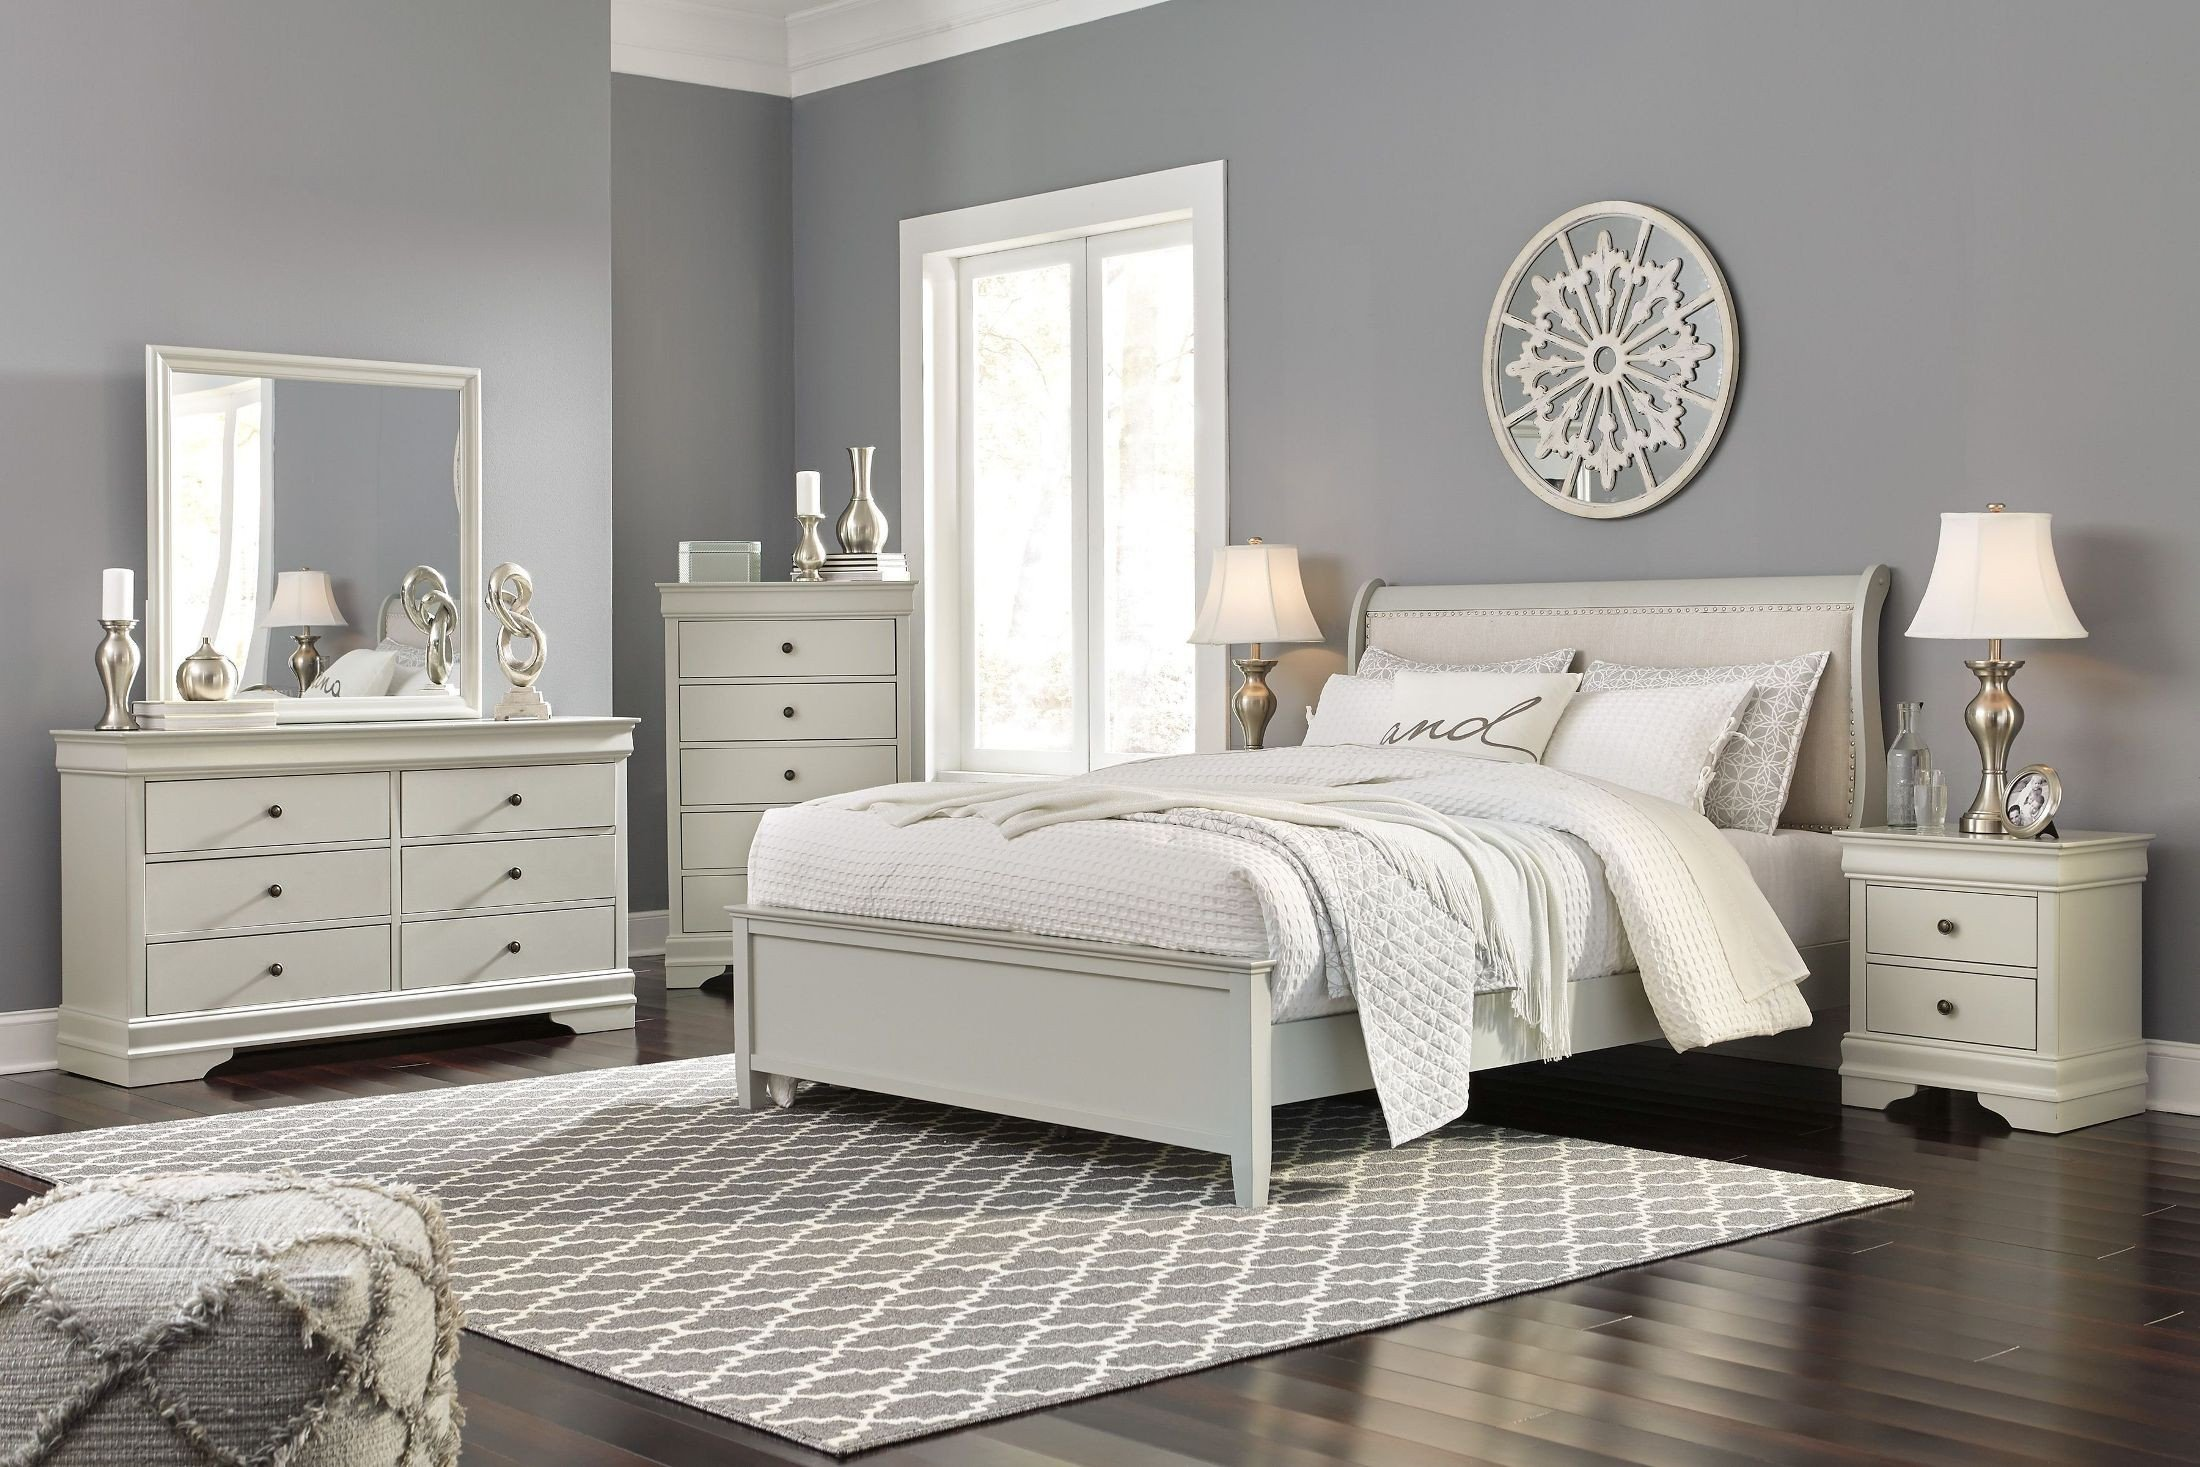 California King Bedroom Set Clearance Awesome Emma Mason Signature Jarred 5 Piece Sleigh Bedroom Set In Gray